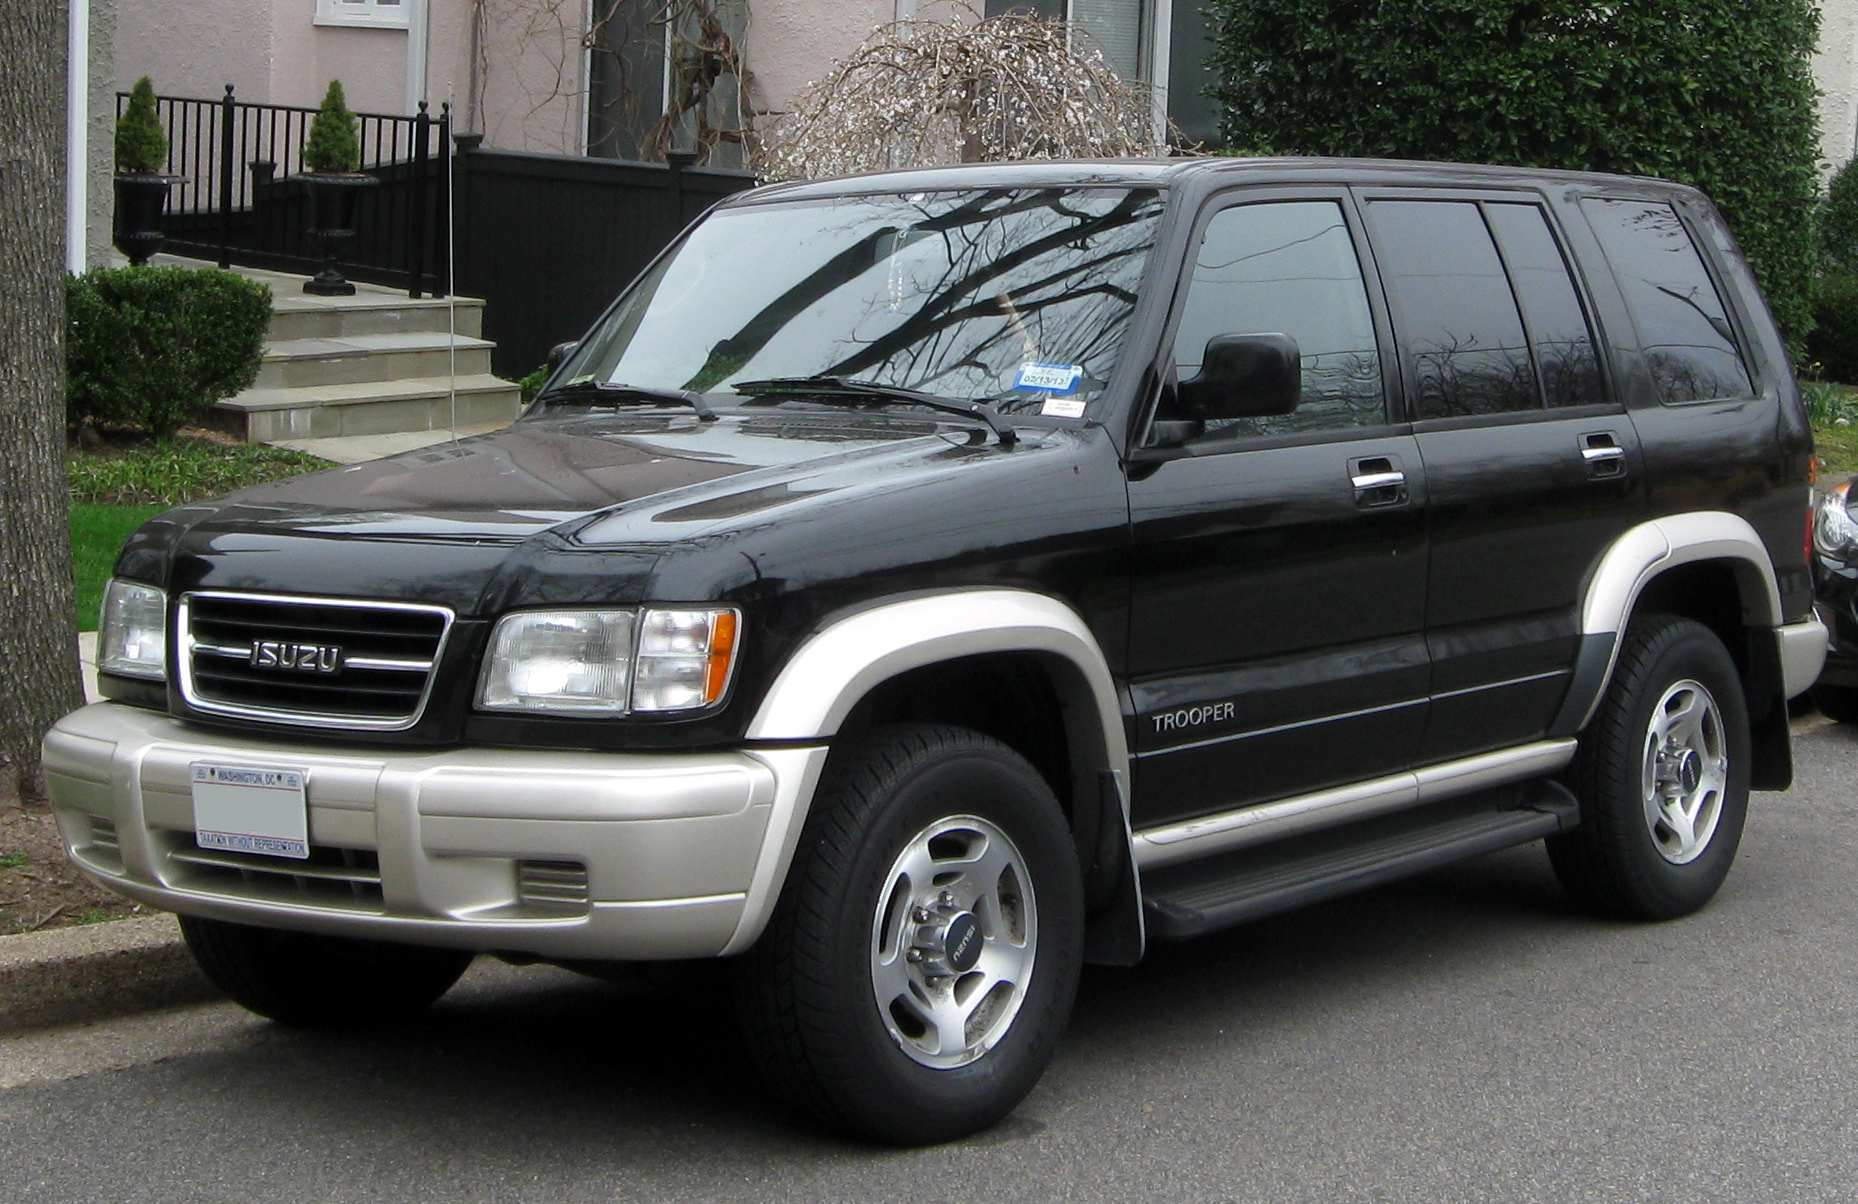 44 New 2019 Isuzu Trooper Specs And Review